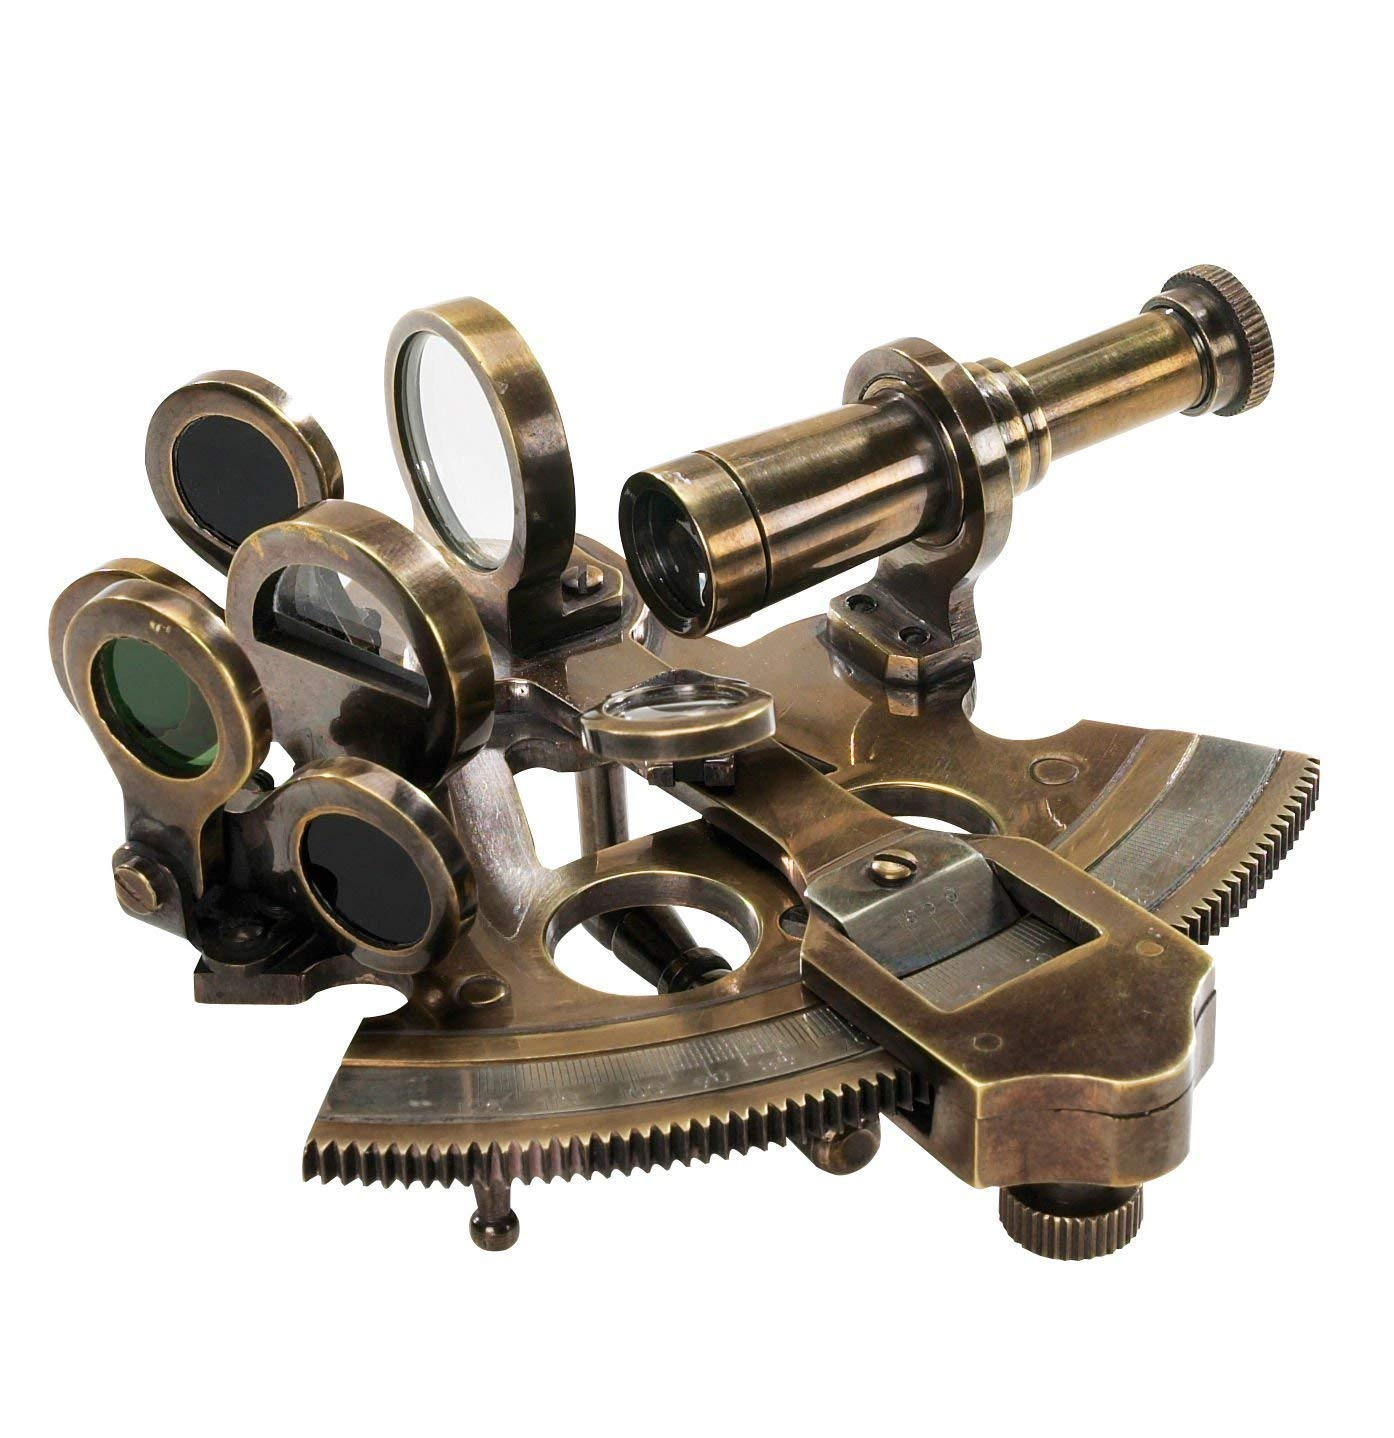 Surveryor's Small-Sextant 4.25 Antiqued Nautical NauticalMart by NAUTICALMART